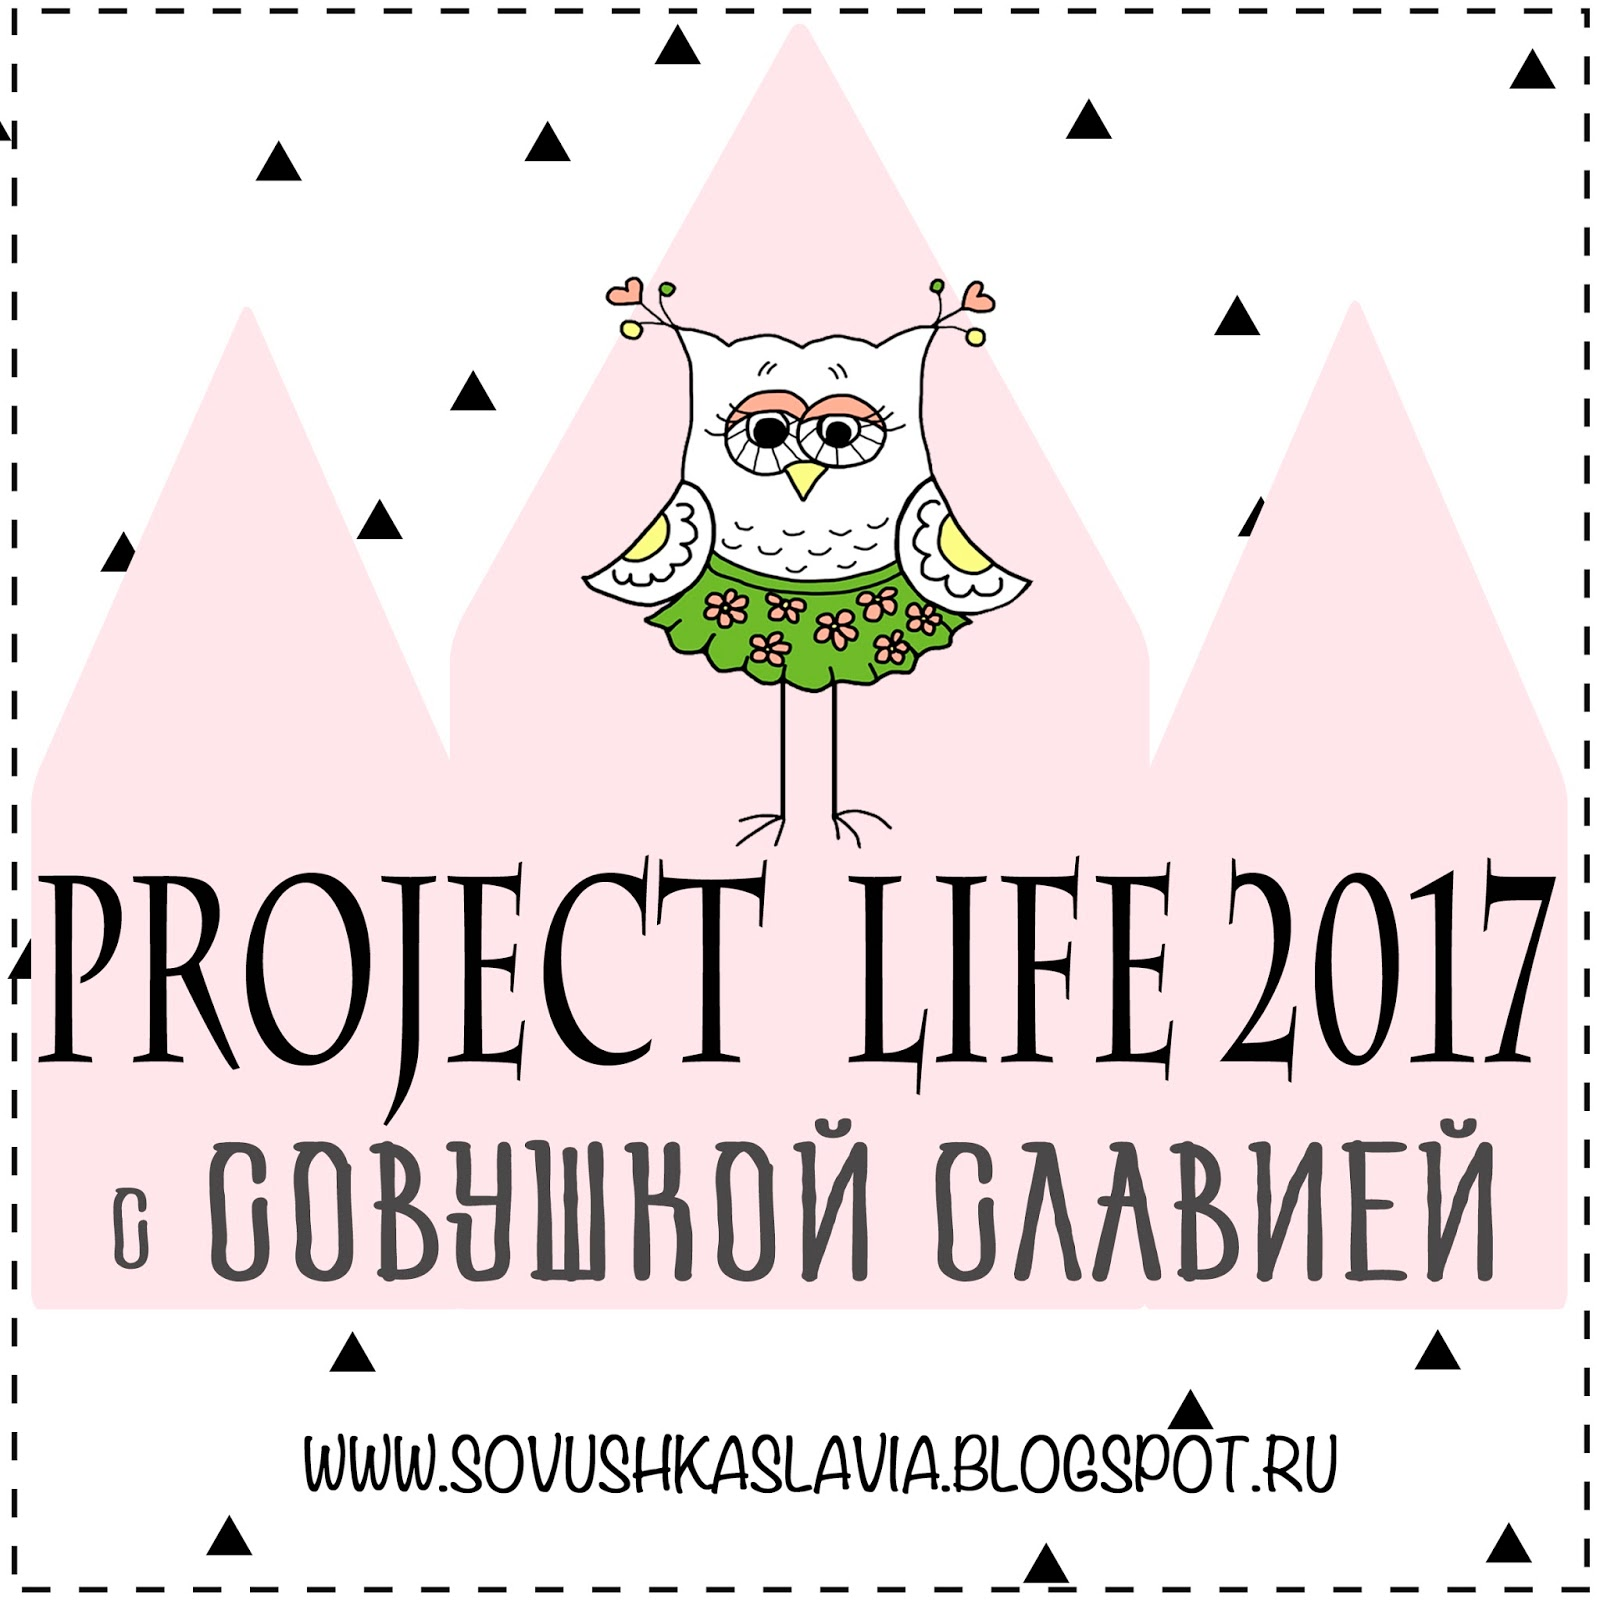 Project Life-2017